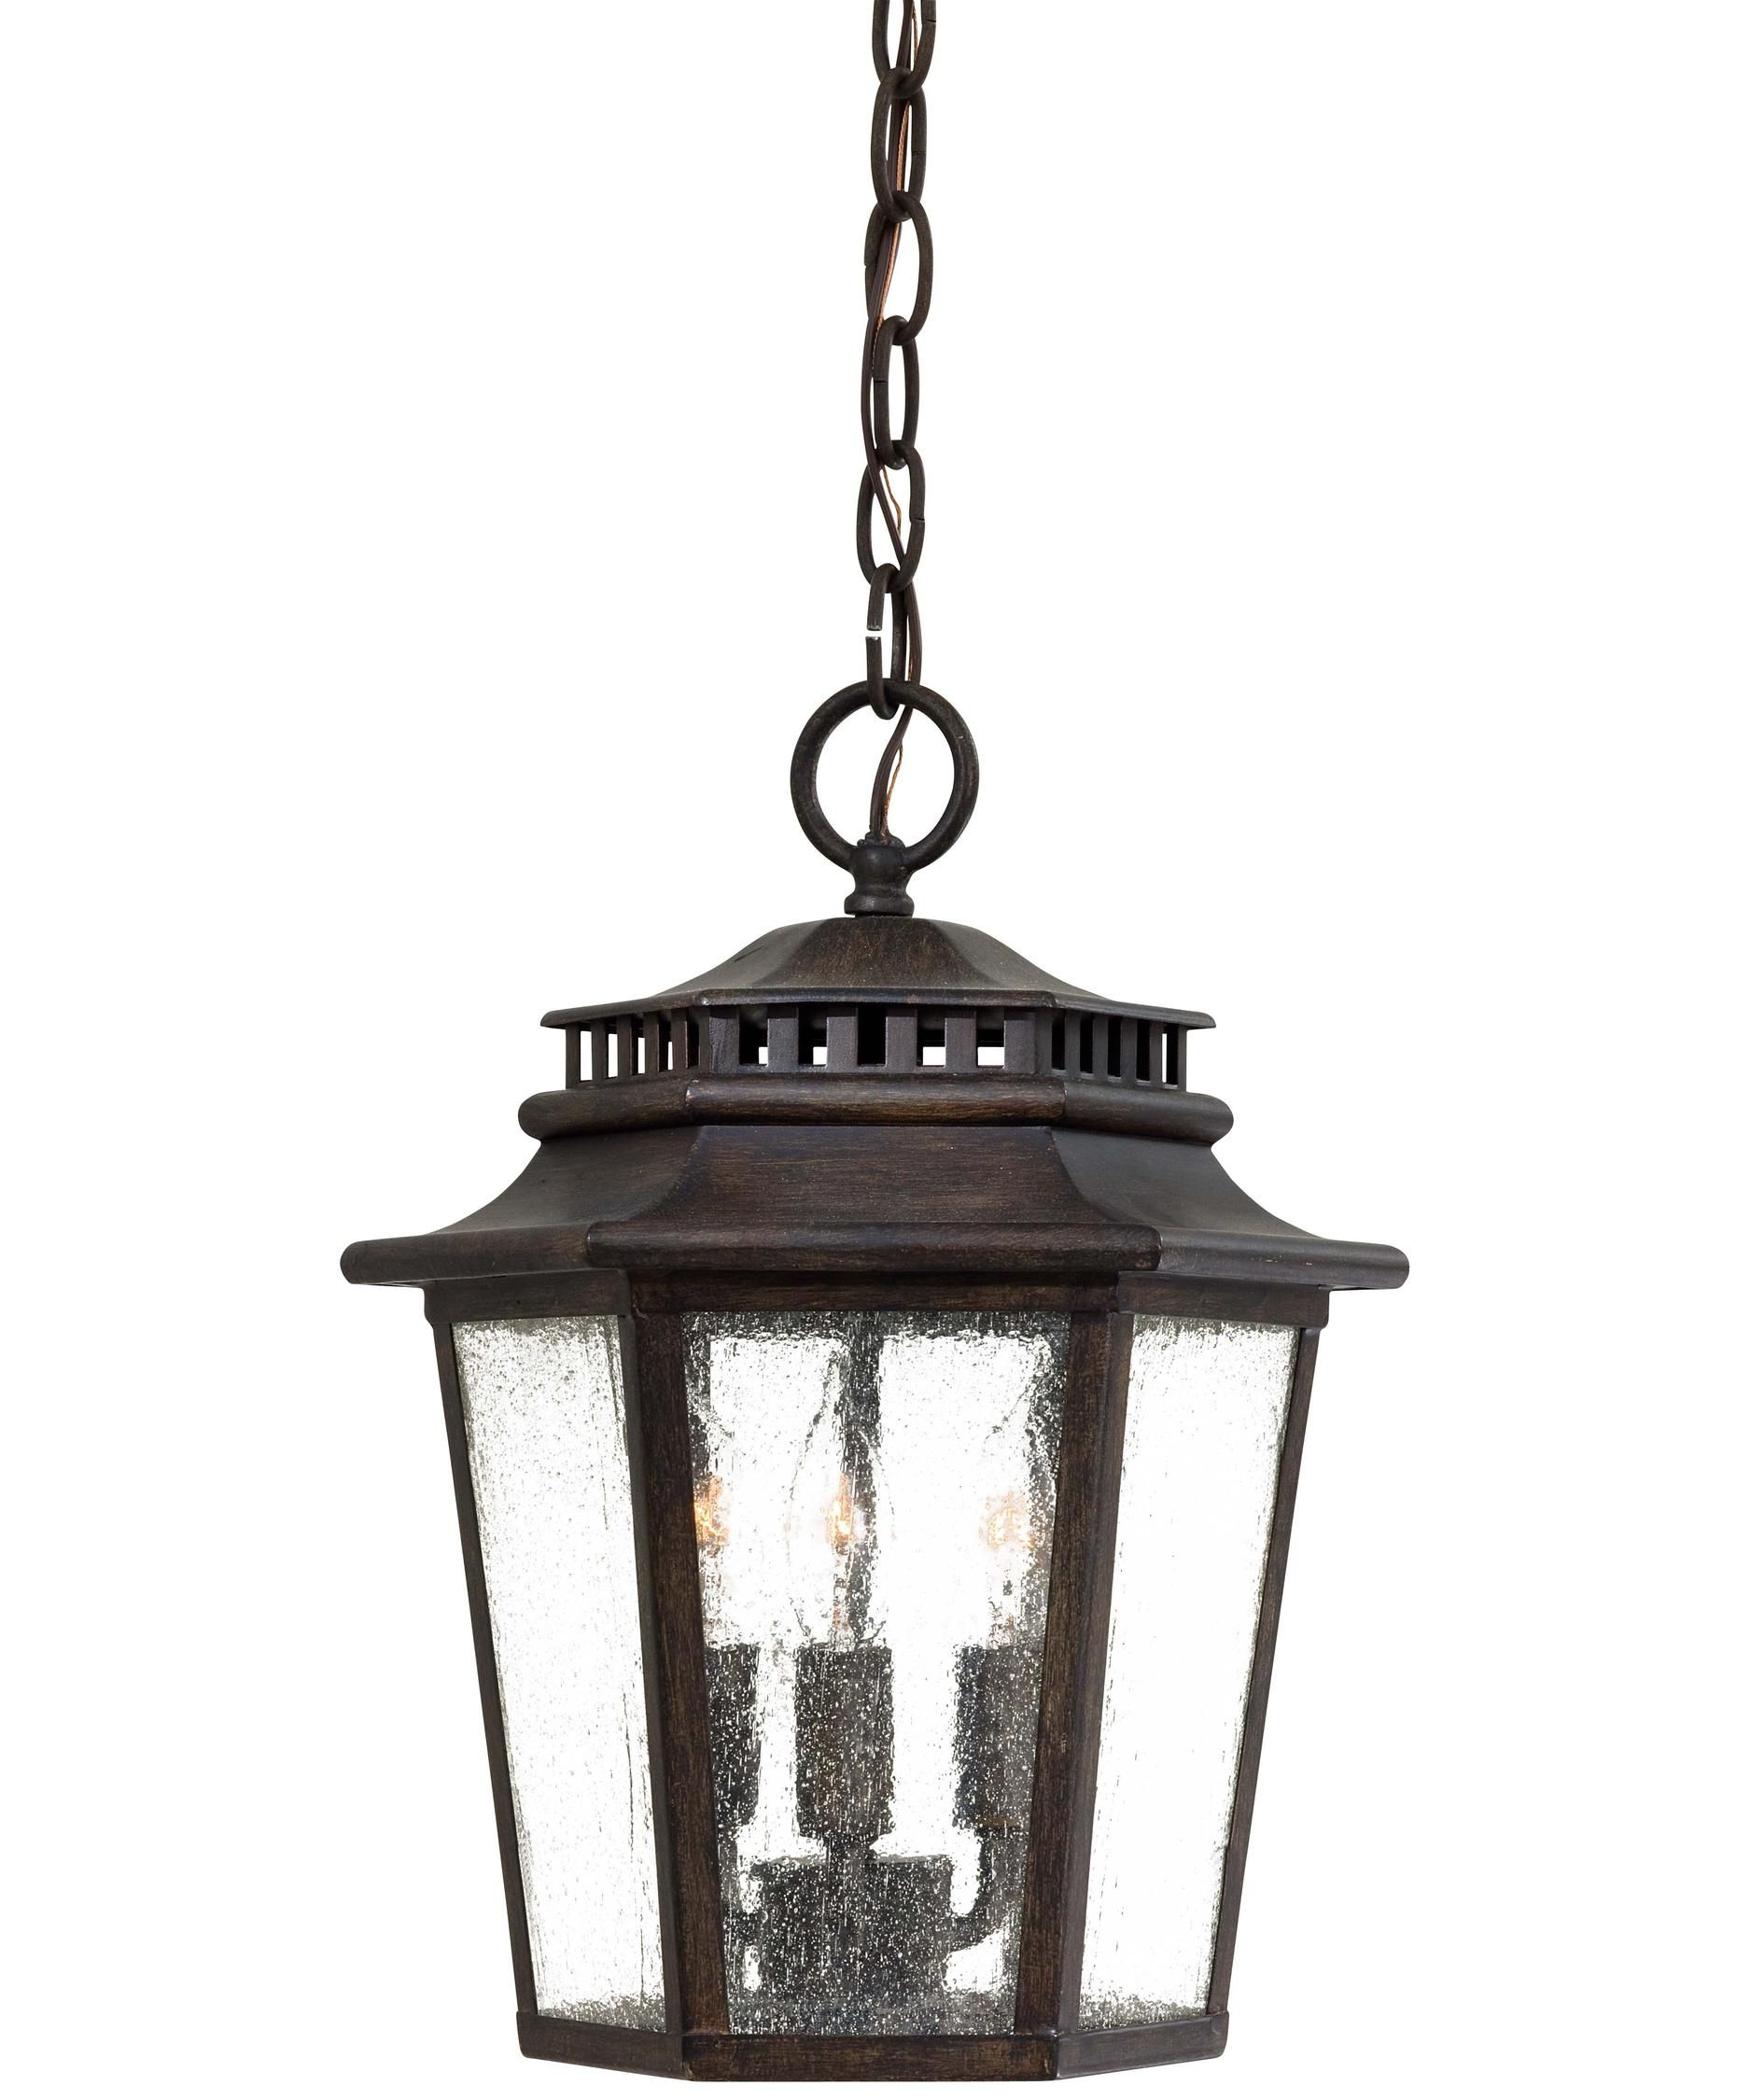 Large Outdoor Pendant Light Fixtures